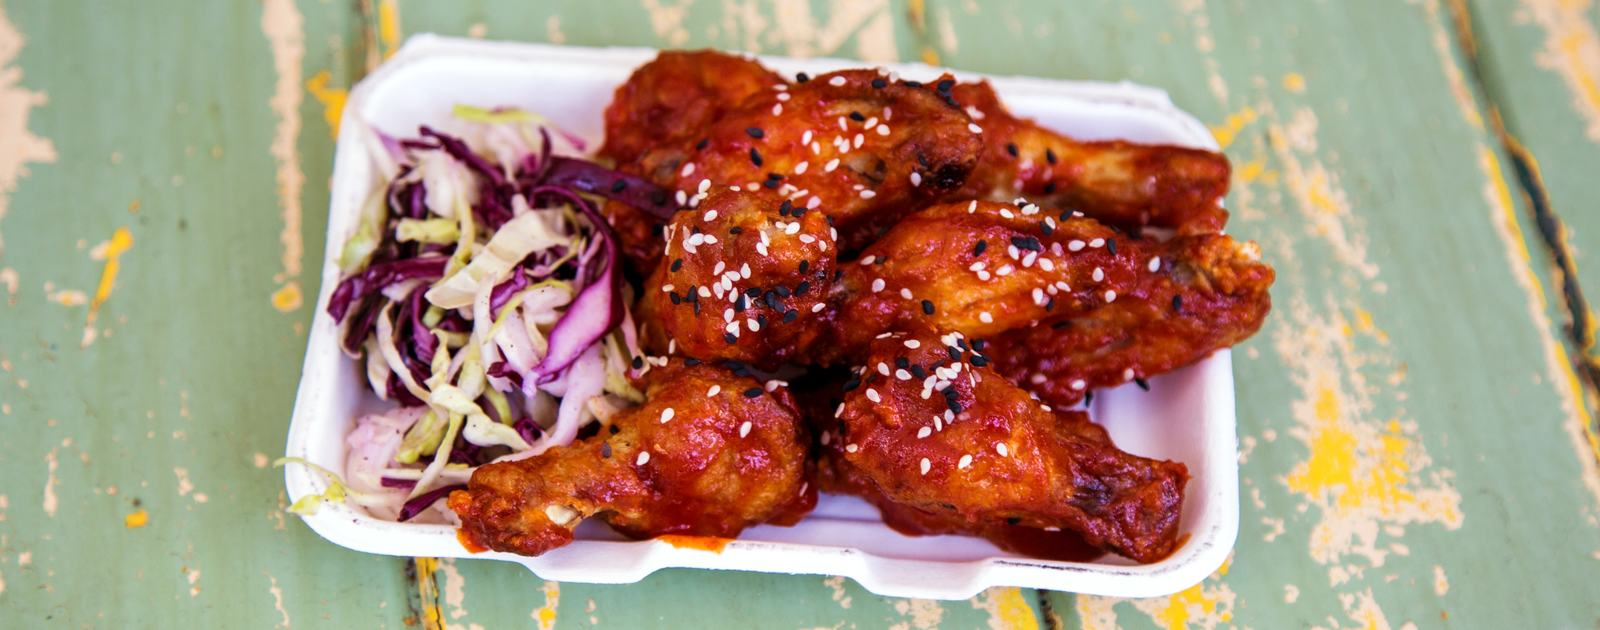 Photo of a plate of chicken wings and slaw as served by Spit & Roast at Southbank Centre Food Market